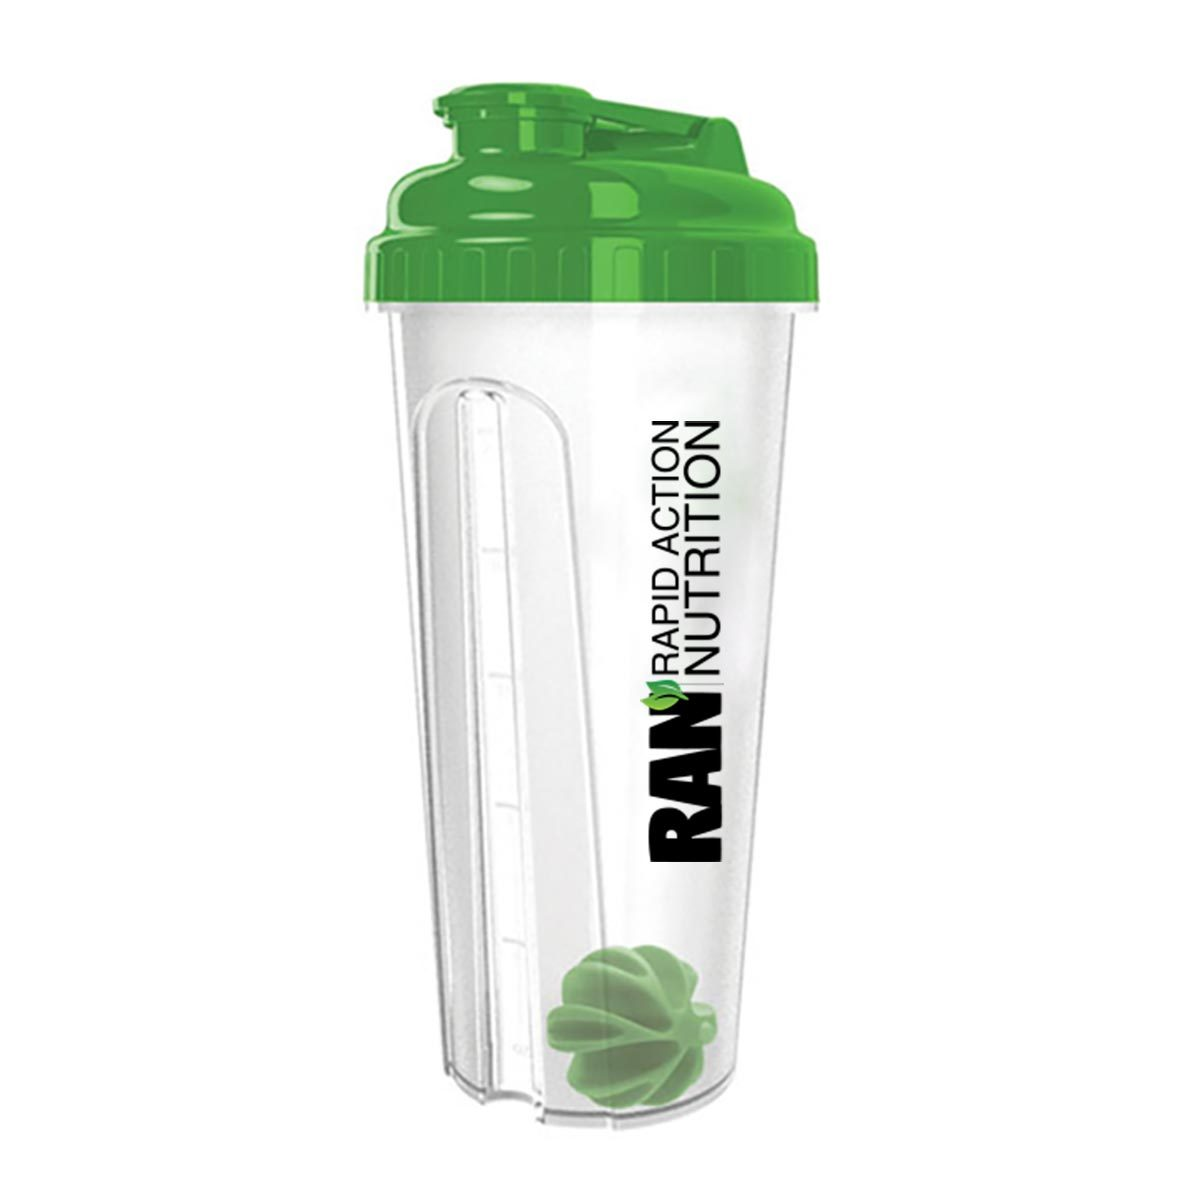 Description Why Buy From Us Delivery and ReturnsOur 24 oz. shaker bottle comes with a screw on lid and a wide opening to drink from. Use the convenient side measurement scale to either measure your ingredients of track your liquid intakeThis bottle is BPA-free, dishwasher safe and measures 3 7/8 inches wide by 9 1/4 inches high. It comes with a plastic mixing ball. The lid snaps securely to prevent leakingHere are4 more great reasonsto buy from us: You get a full 60 days to return your item to us.We want you to have plenty of time to try our products out because we are confident you'll be very pleased.Returns are easy, simply contact us and let us know what the problem is. We'll work with you to resolve that issue in a snap!We insist that you love everything you buy from us. If you're unhappy for any reason whatsoever, just let us know and we'll bend over backwards to make things right again.Ordering from Rapid Action Nutrition is 100% safe and secure. We are secured through GeoTrust